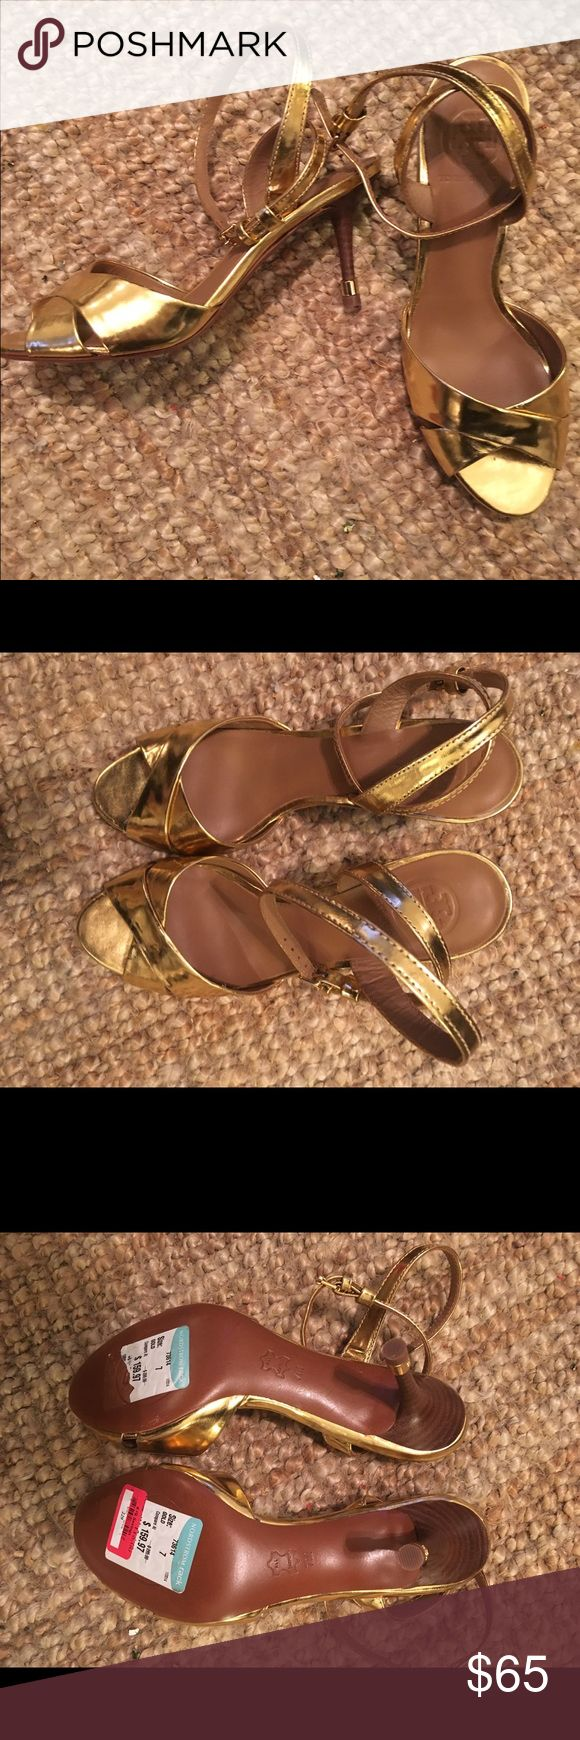 Tory Burch Gold Pumps Lovely gold pumps- never worn- bought for a bachelorette party and never worn Tory Burch Shoes Heels